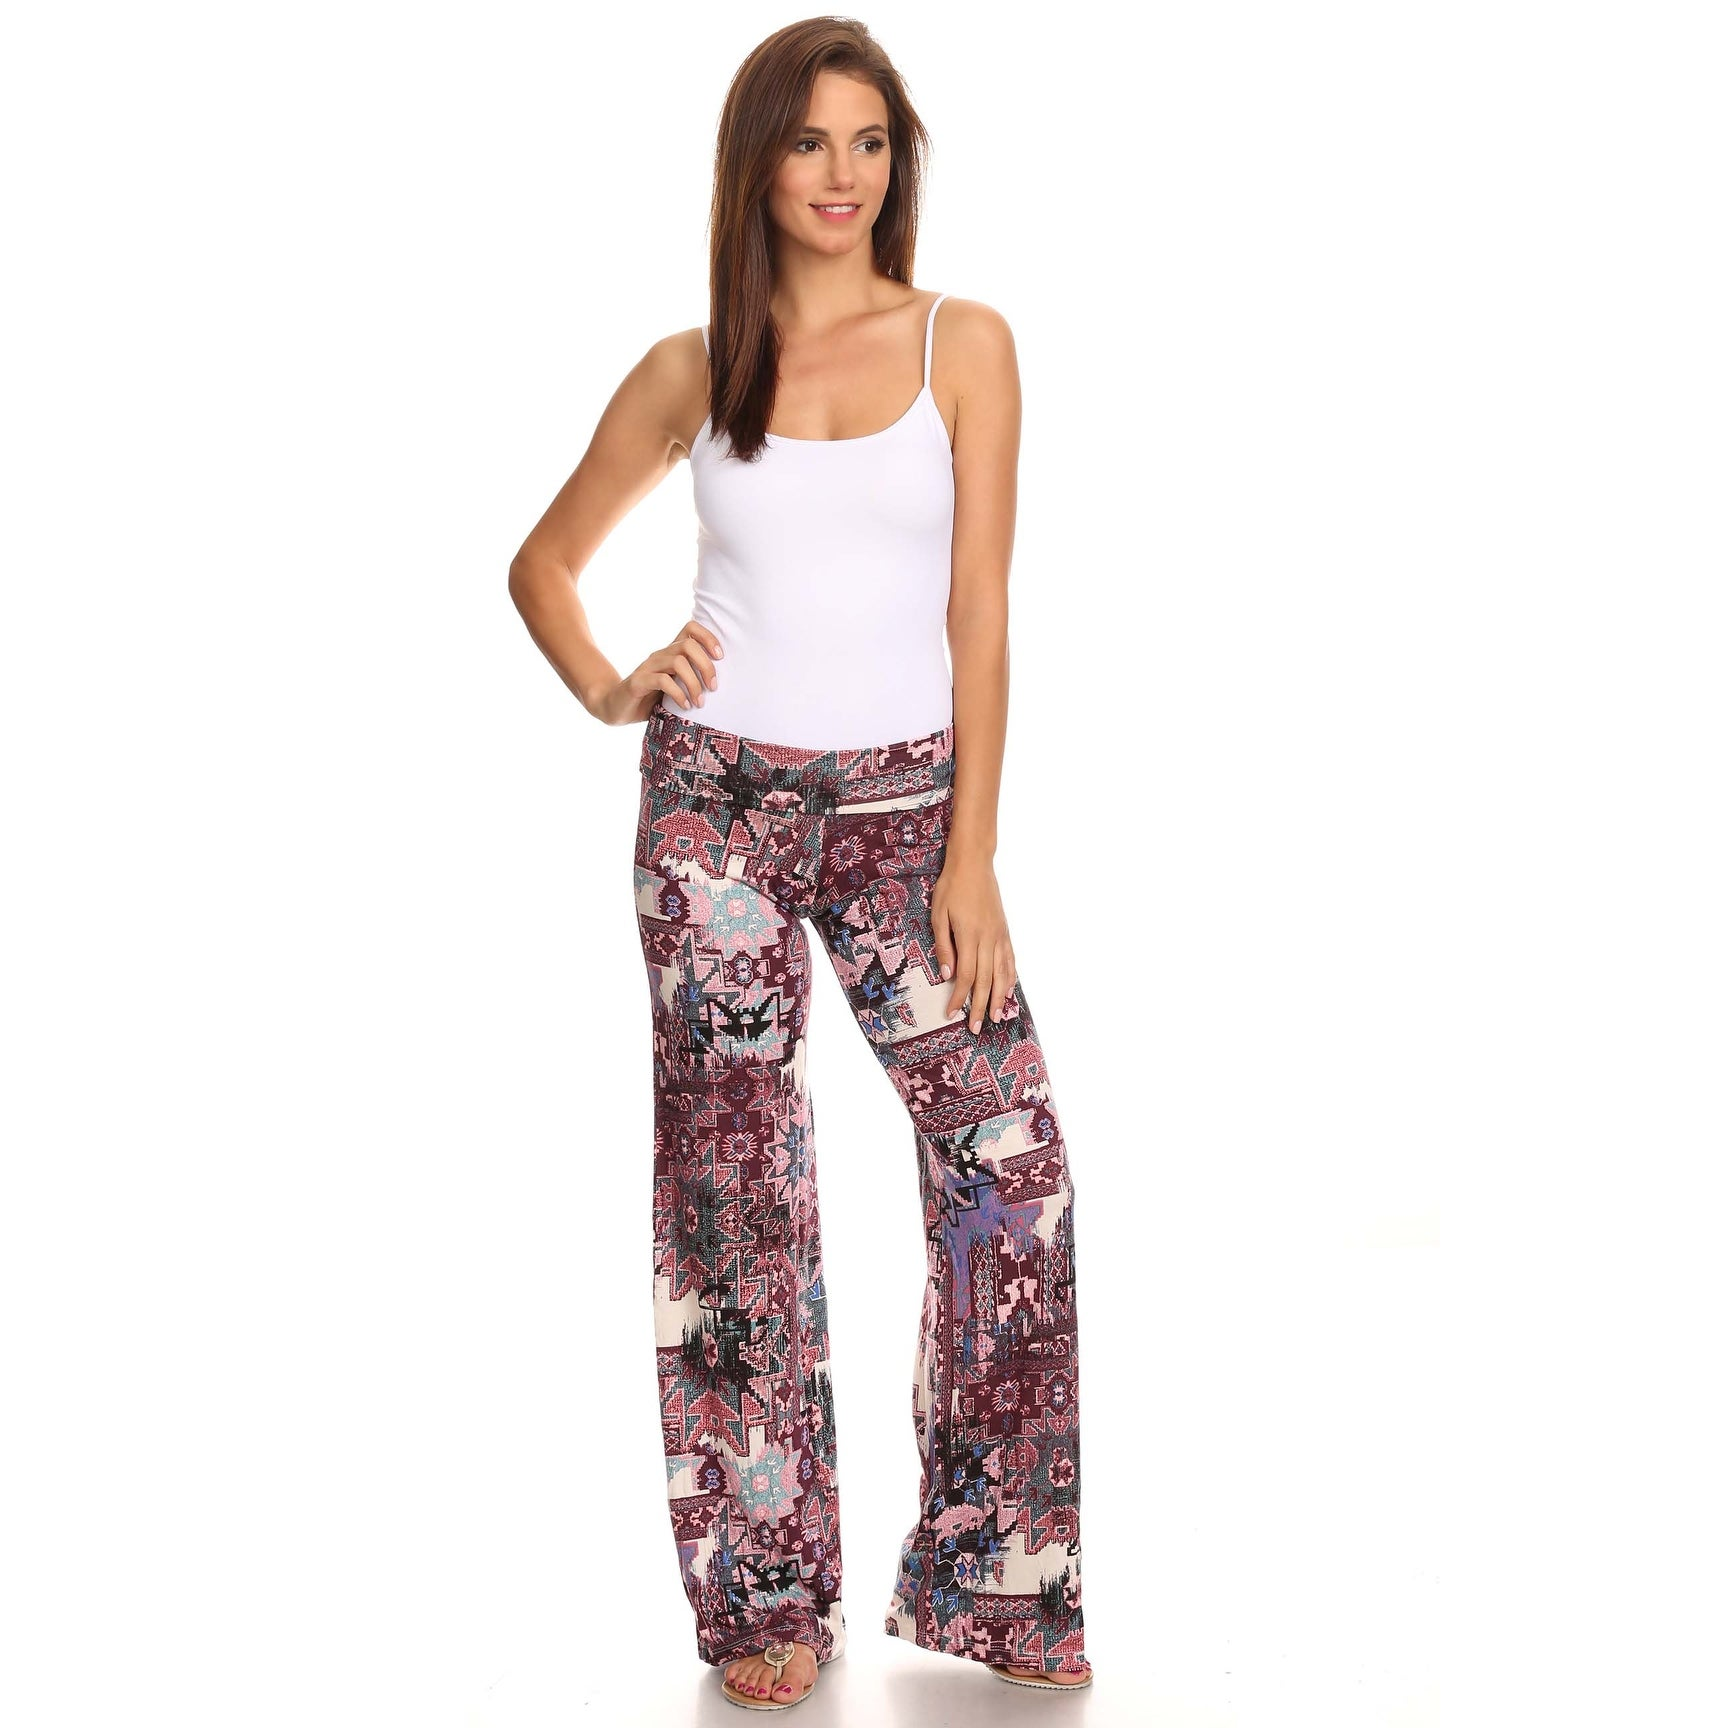 287aeef337b Shop Women s Printed Palazzo Pants Loose Fit With Flatten Waist Band Aztec  Tribal Damask Chevron Boho Bohemian Pailey Pattern - Free Shipping On  Orders Over ...